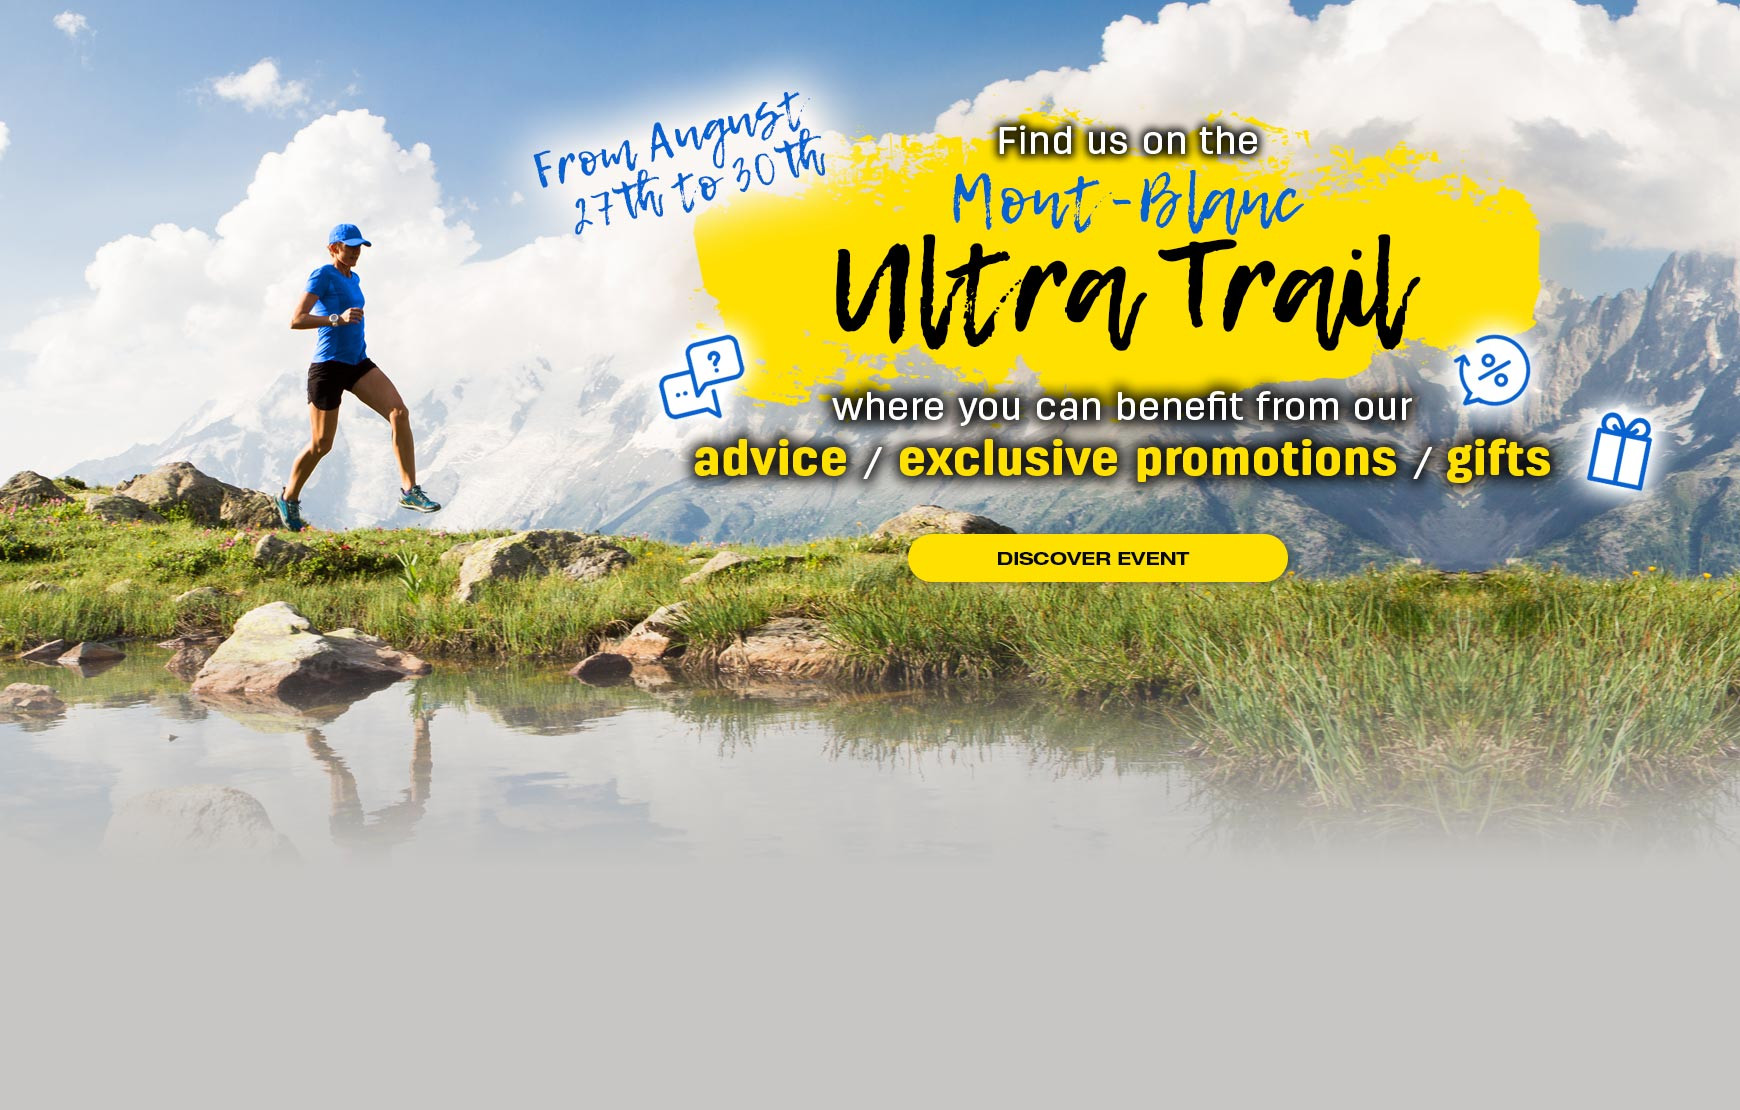 From August 27 to 30, find us at the Mont Blanc Ultra Trail show